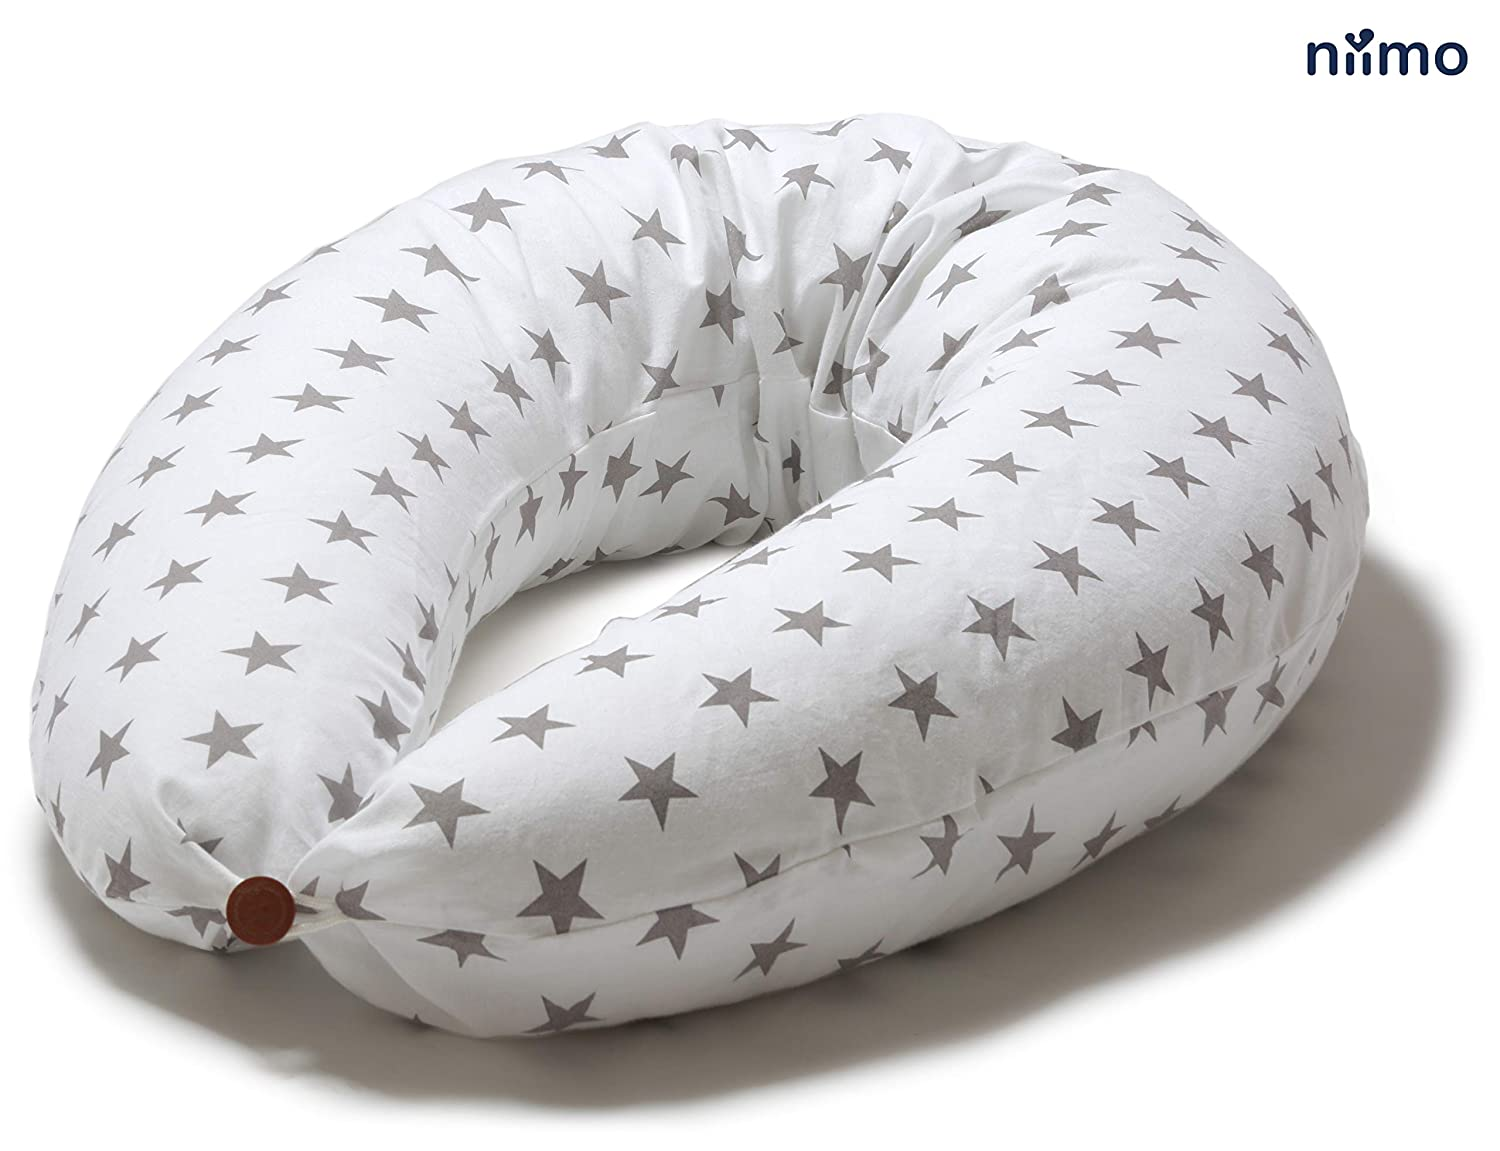 Pregnancy Pillow Nursing Pillow Cuddle Nest Maternity Pillow for Breastfeeding Baby e Full Body for Sleeping Large XXL 100/% Cotton Pillow Case Inner Filling Polyester Fiber Niimo